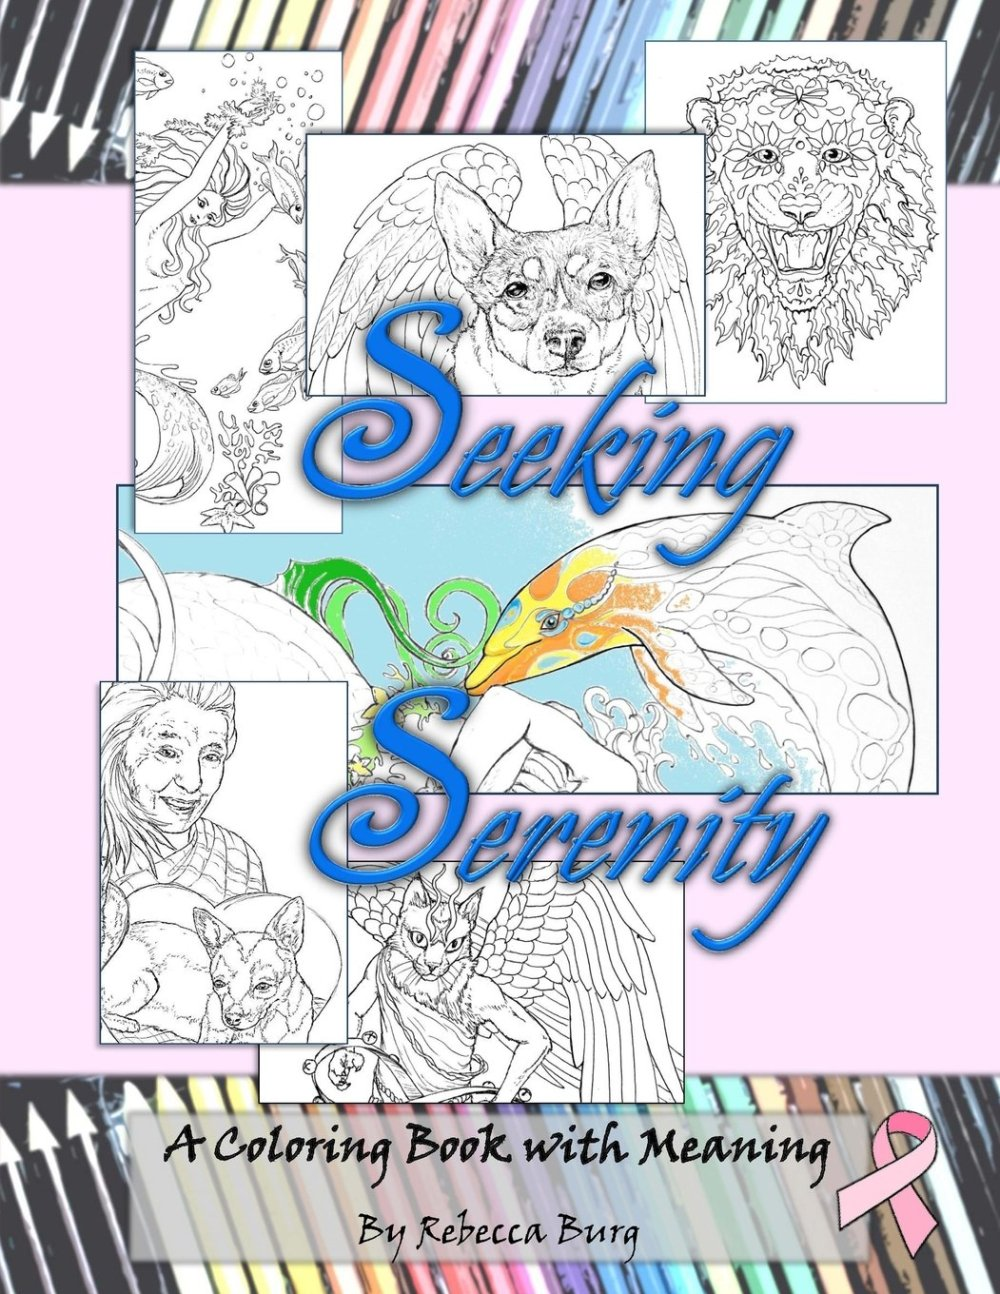 Seeking Serenity: A Coloring Book With Meaning Paperback by Rebecca Burg